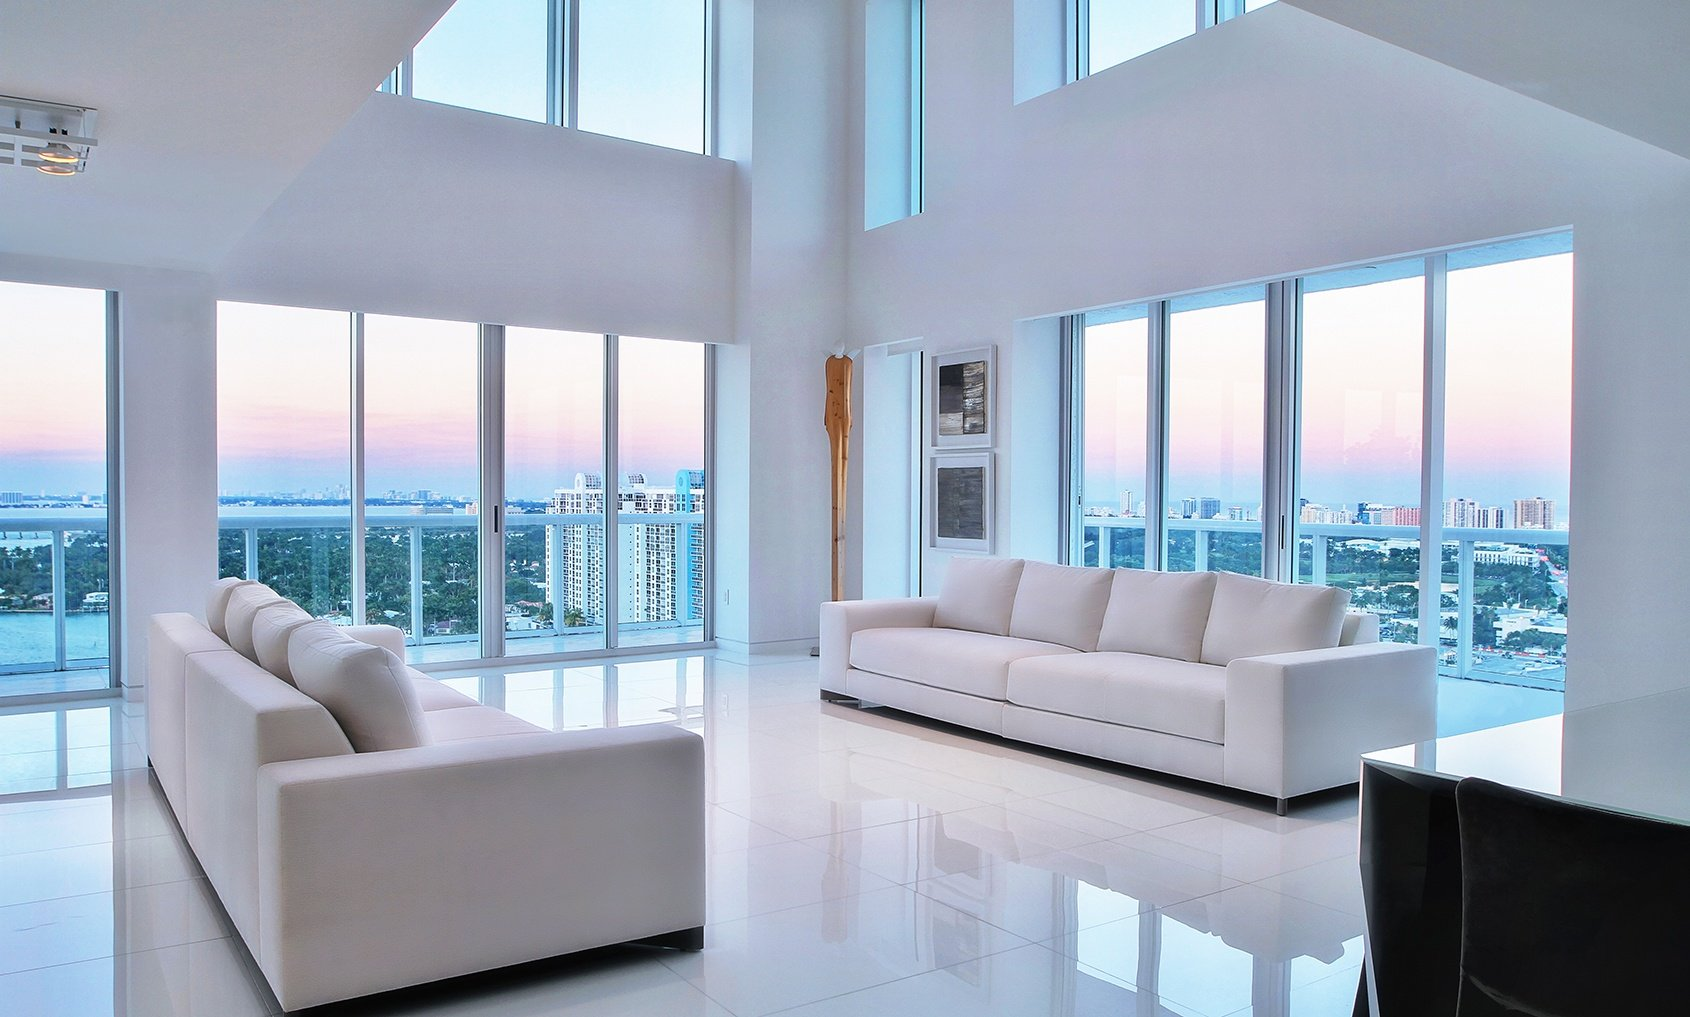 With 360-degree views of Miami Beach and the city skyline, this loft-style duplex penthouse is the quintessential South Beach retreat.